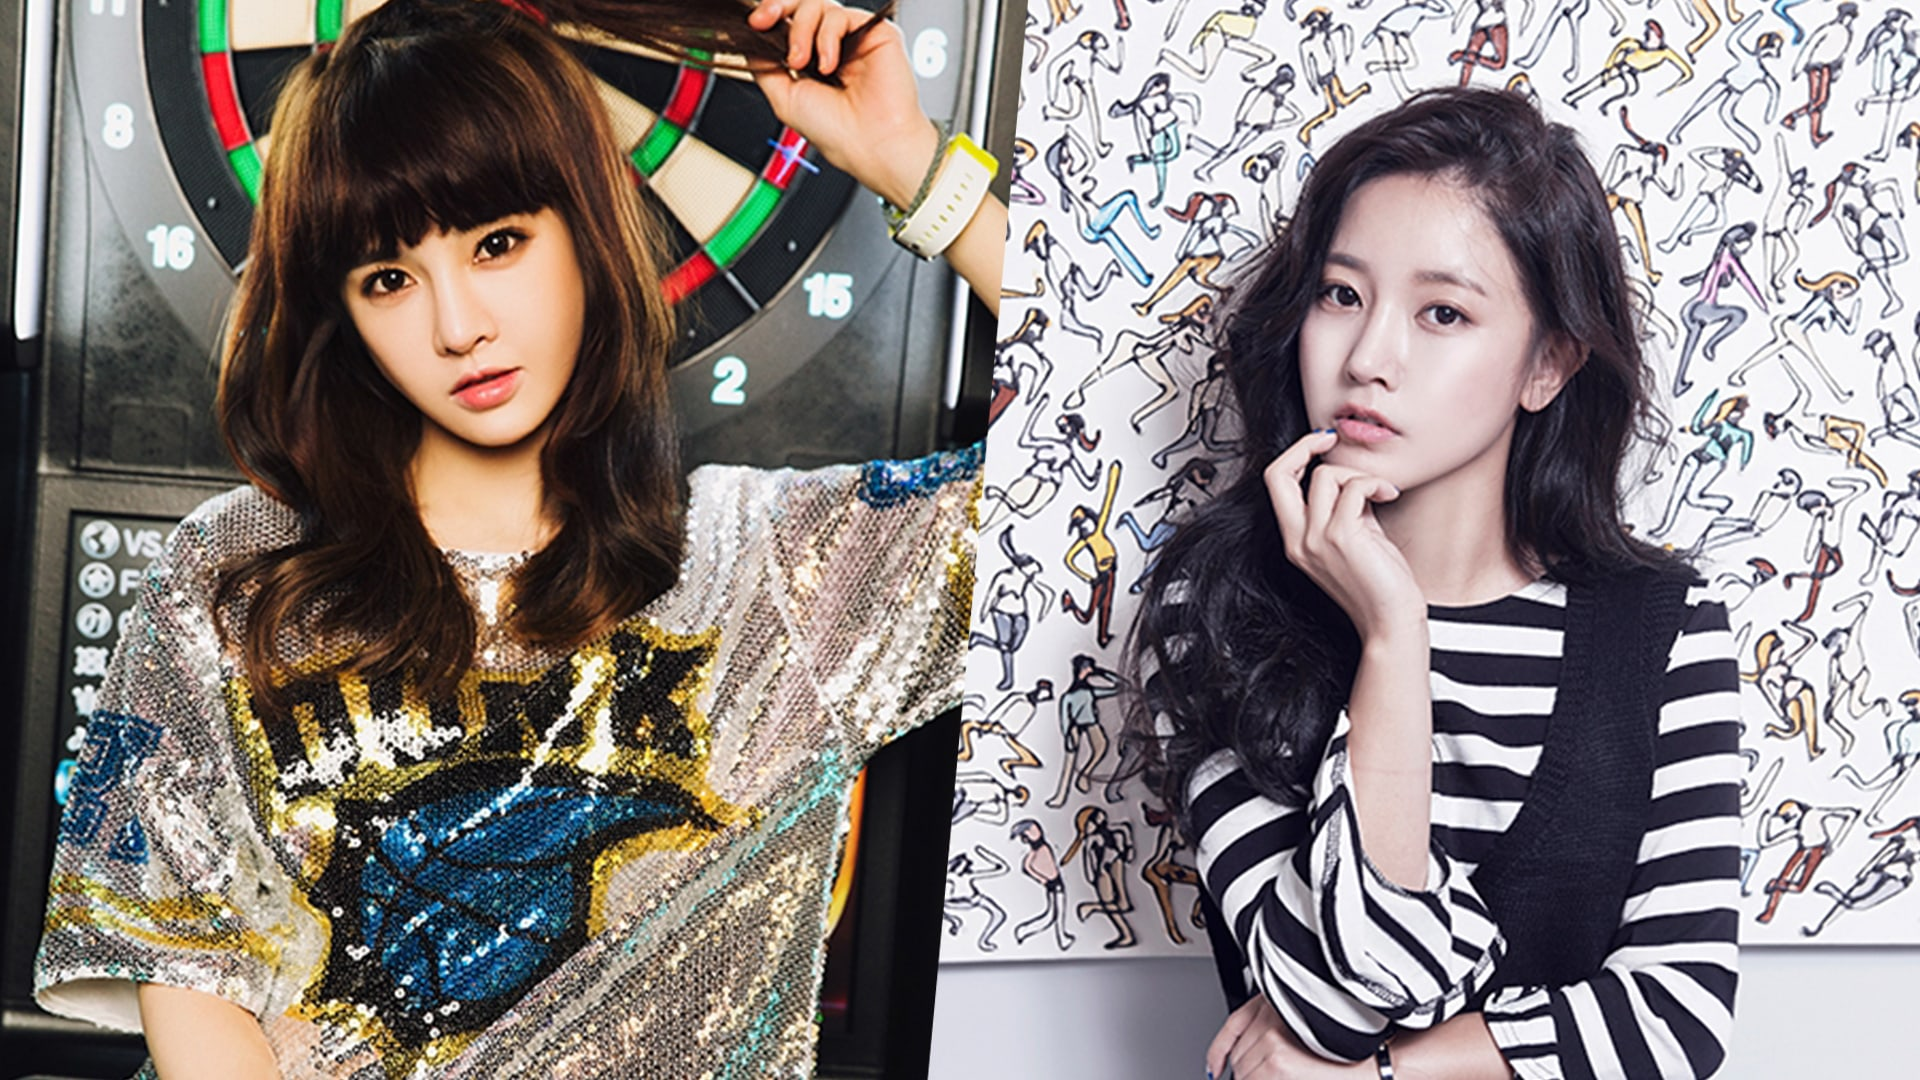 T-ara's Agency Releases Statement About Soyeon And Boram's Worrisome Independent Actions